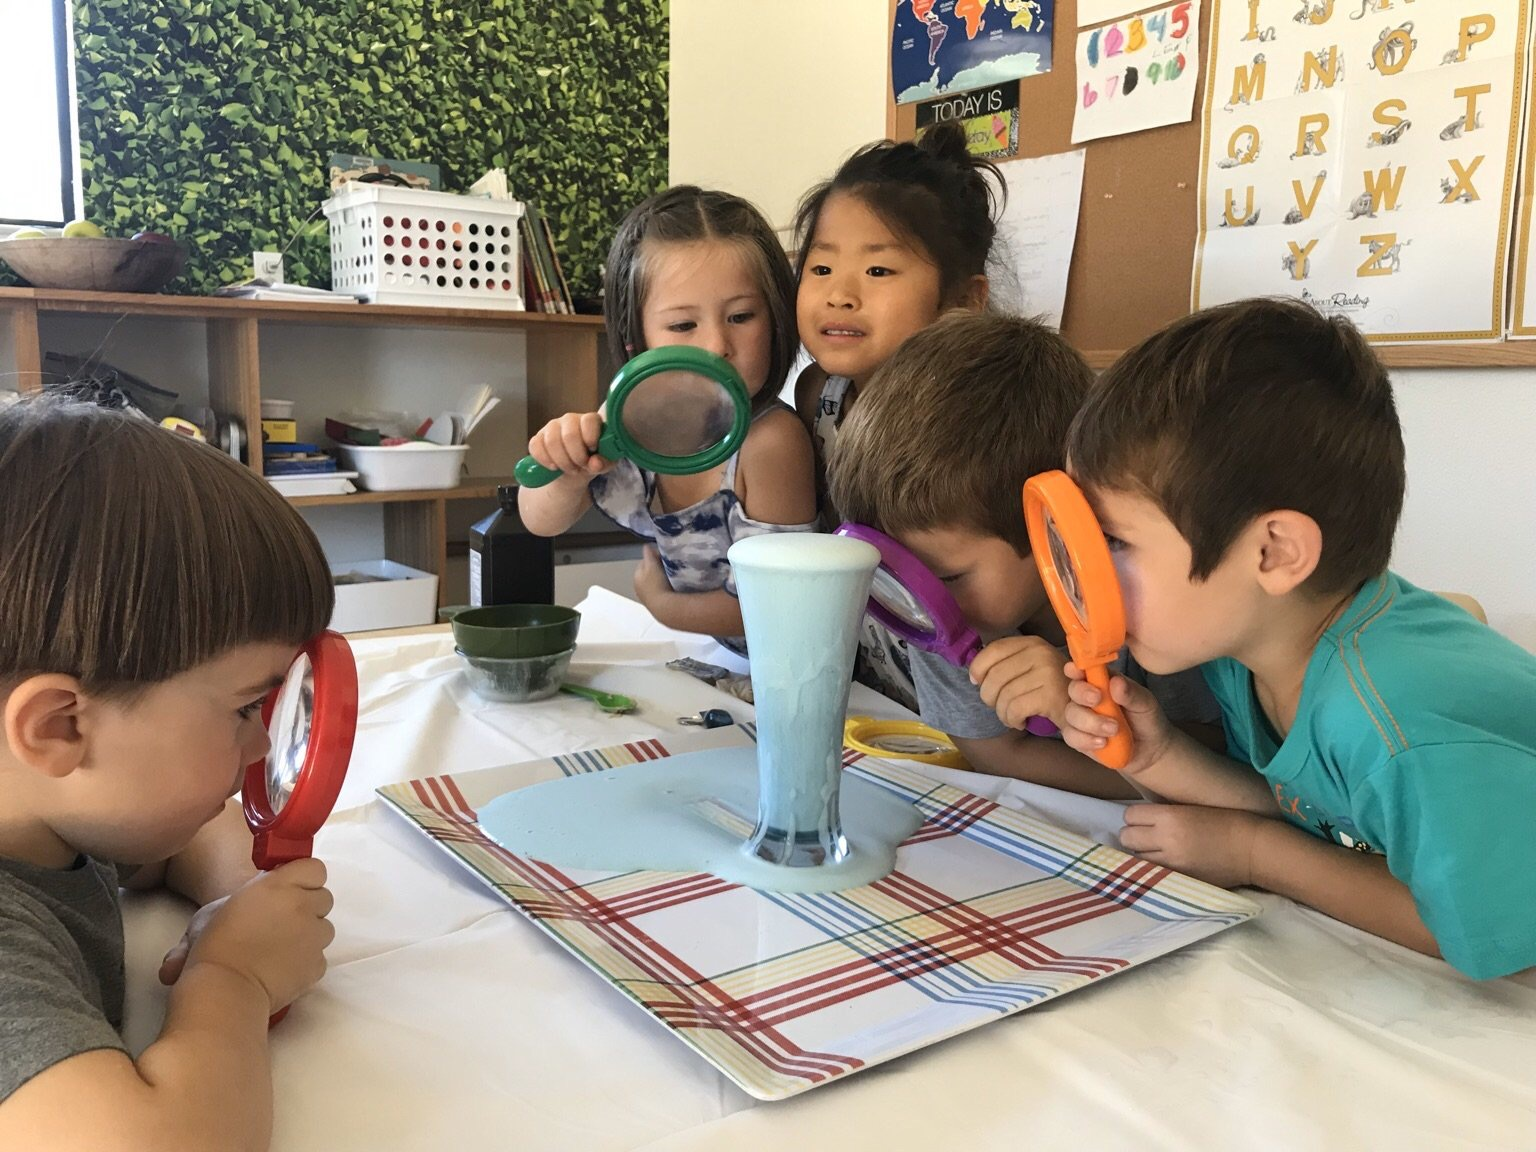 Science - students using magnifying glass to study experiment more closely